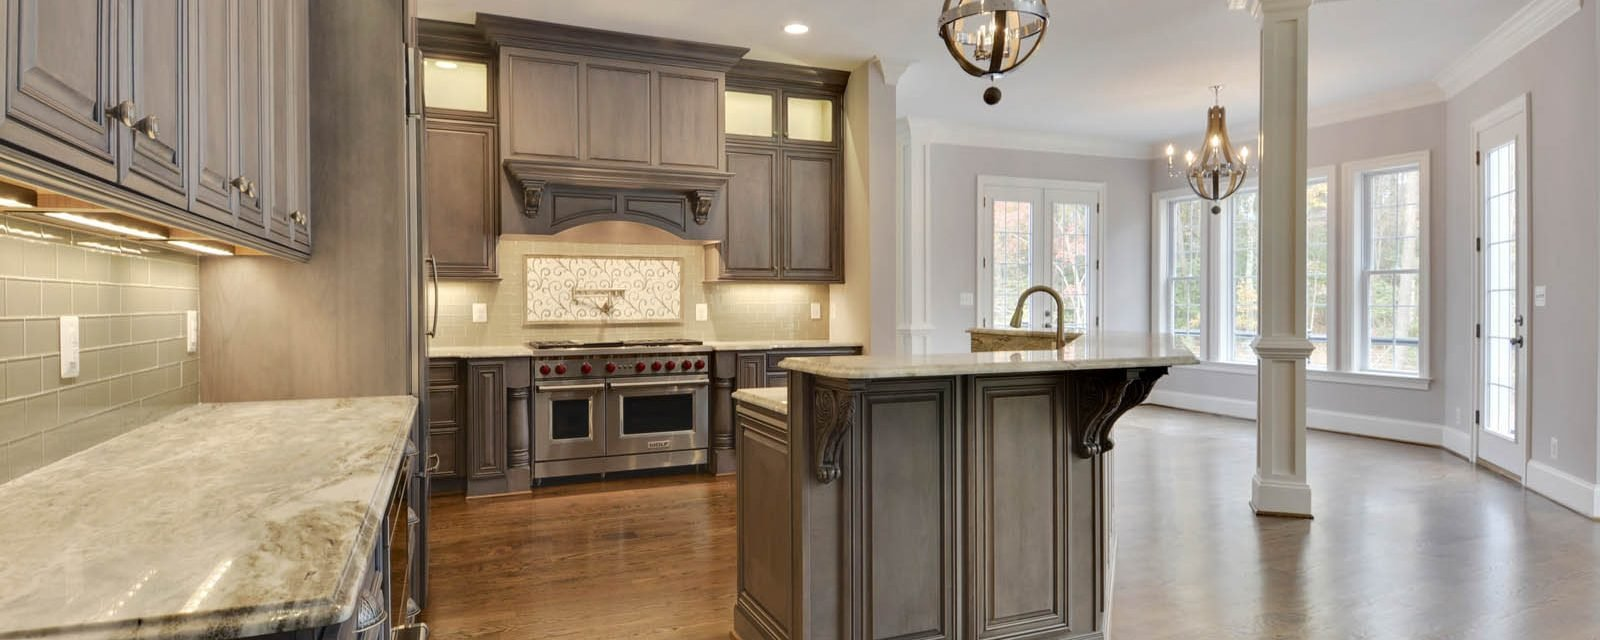 Millersville Custom Home - Kitchen